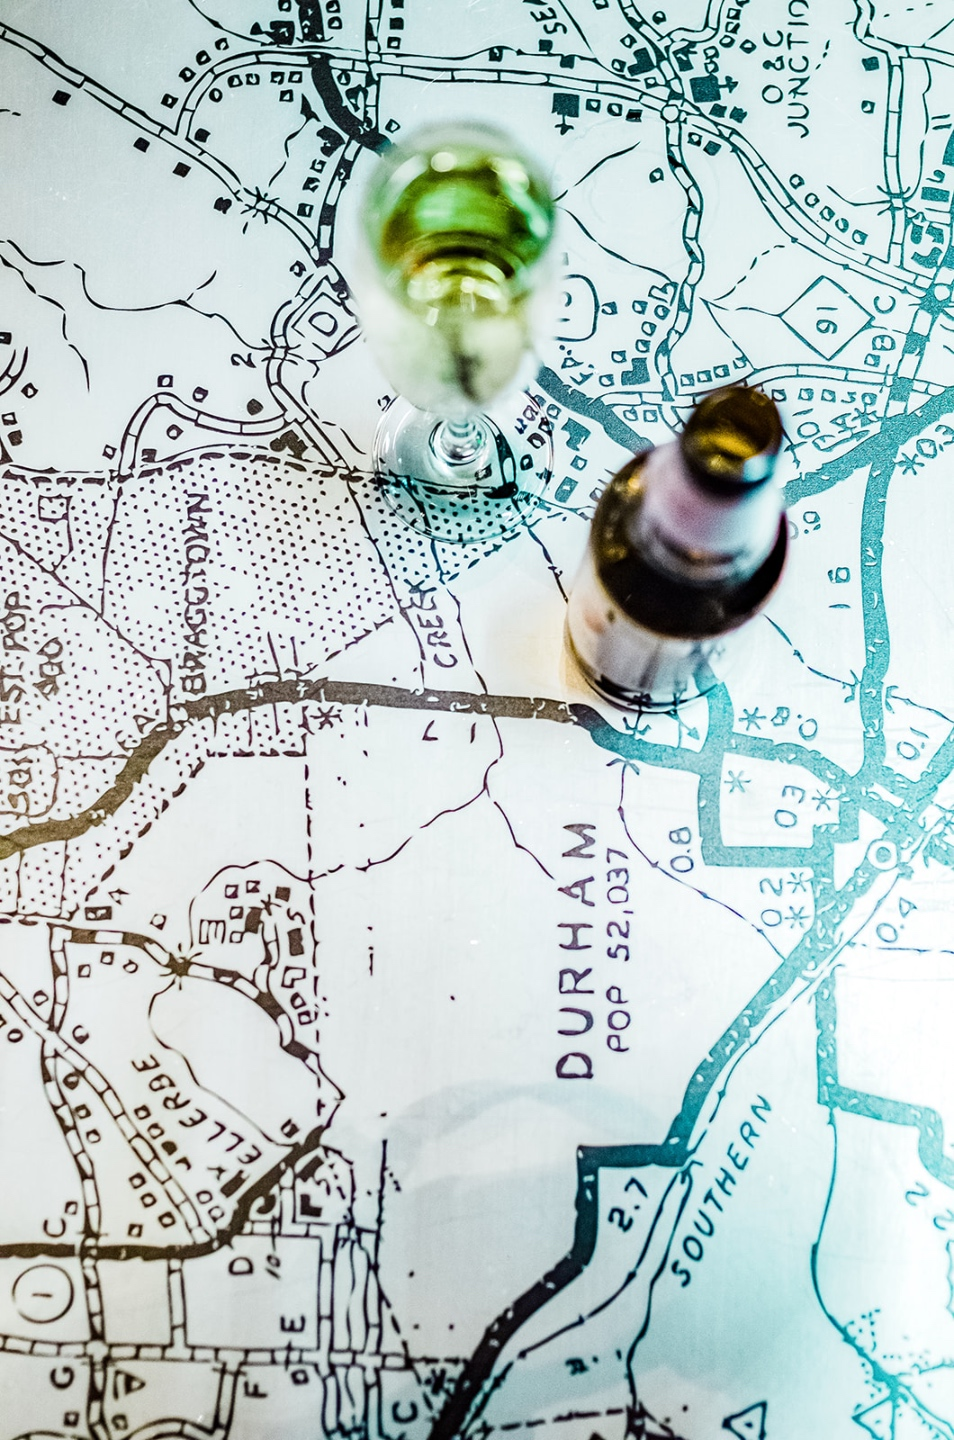 23 Awesome Things To Do in Durham - I'm Fixin' To - @imfixintoblog | Things to do in Durham by popular NC travel blog, I'm Fixin' To: image of a bottle of beer resting on a table covered with a black and white map of Durham.